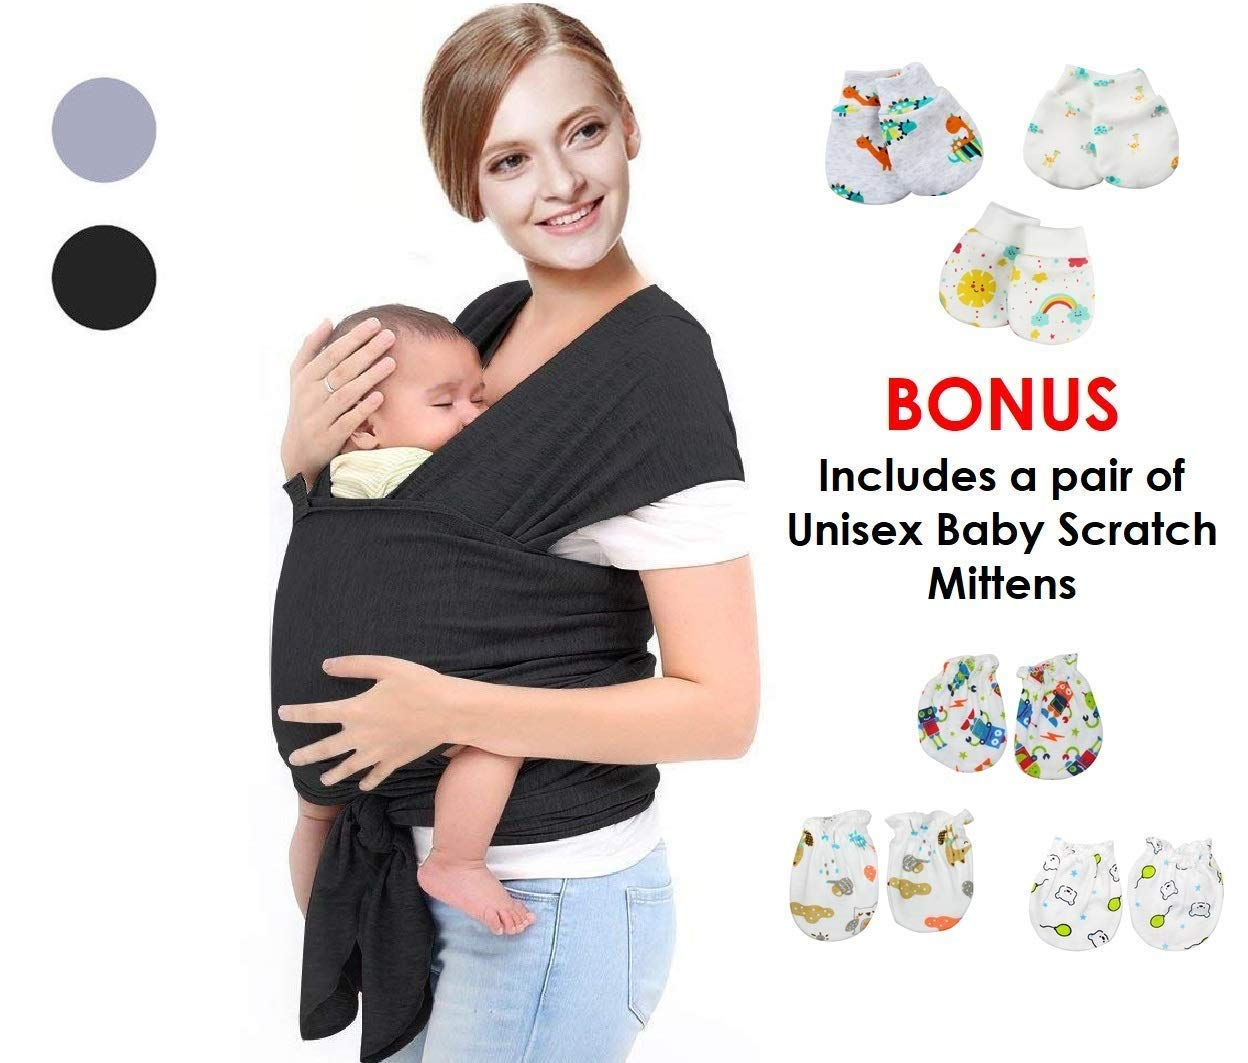 Premium Baby Wrap Carrier Sling- Newborns 0-3 years includes infants & toddlers| 3 Carrying Positions | Soothing, Warm & Cosy For Babies | Breathable Cotton & Spandex Fabric | Ideal Gift | Free Scratch Mitten SyeNaz